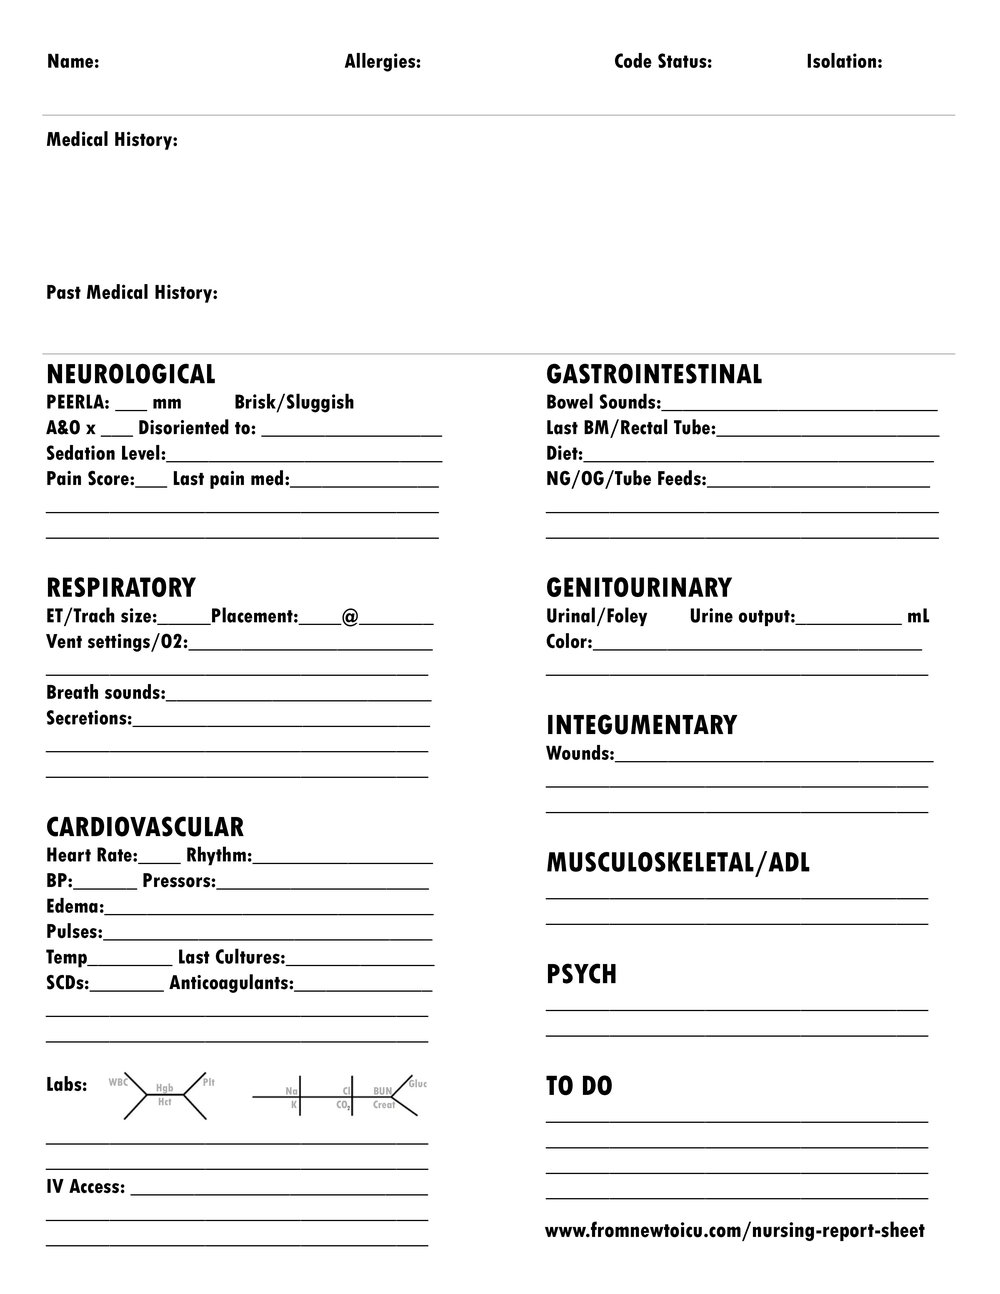 ICU Nursing Report Sheet.jpg